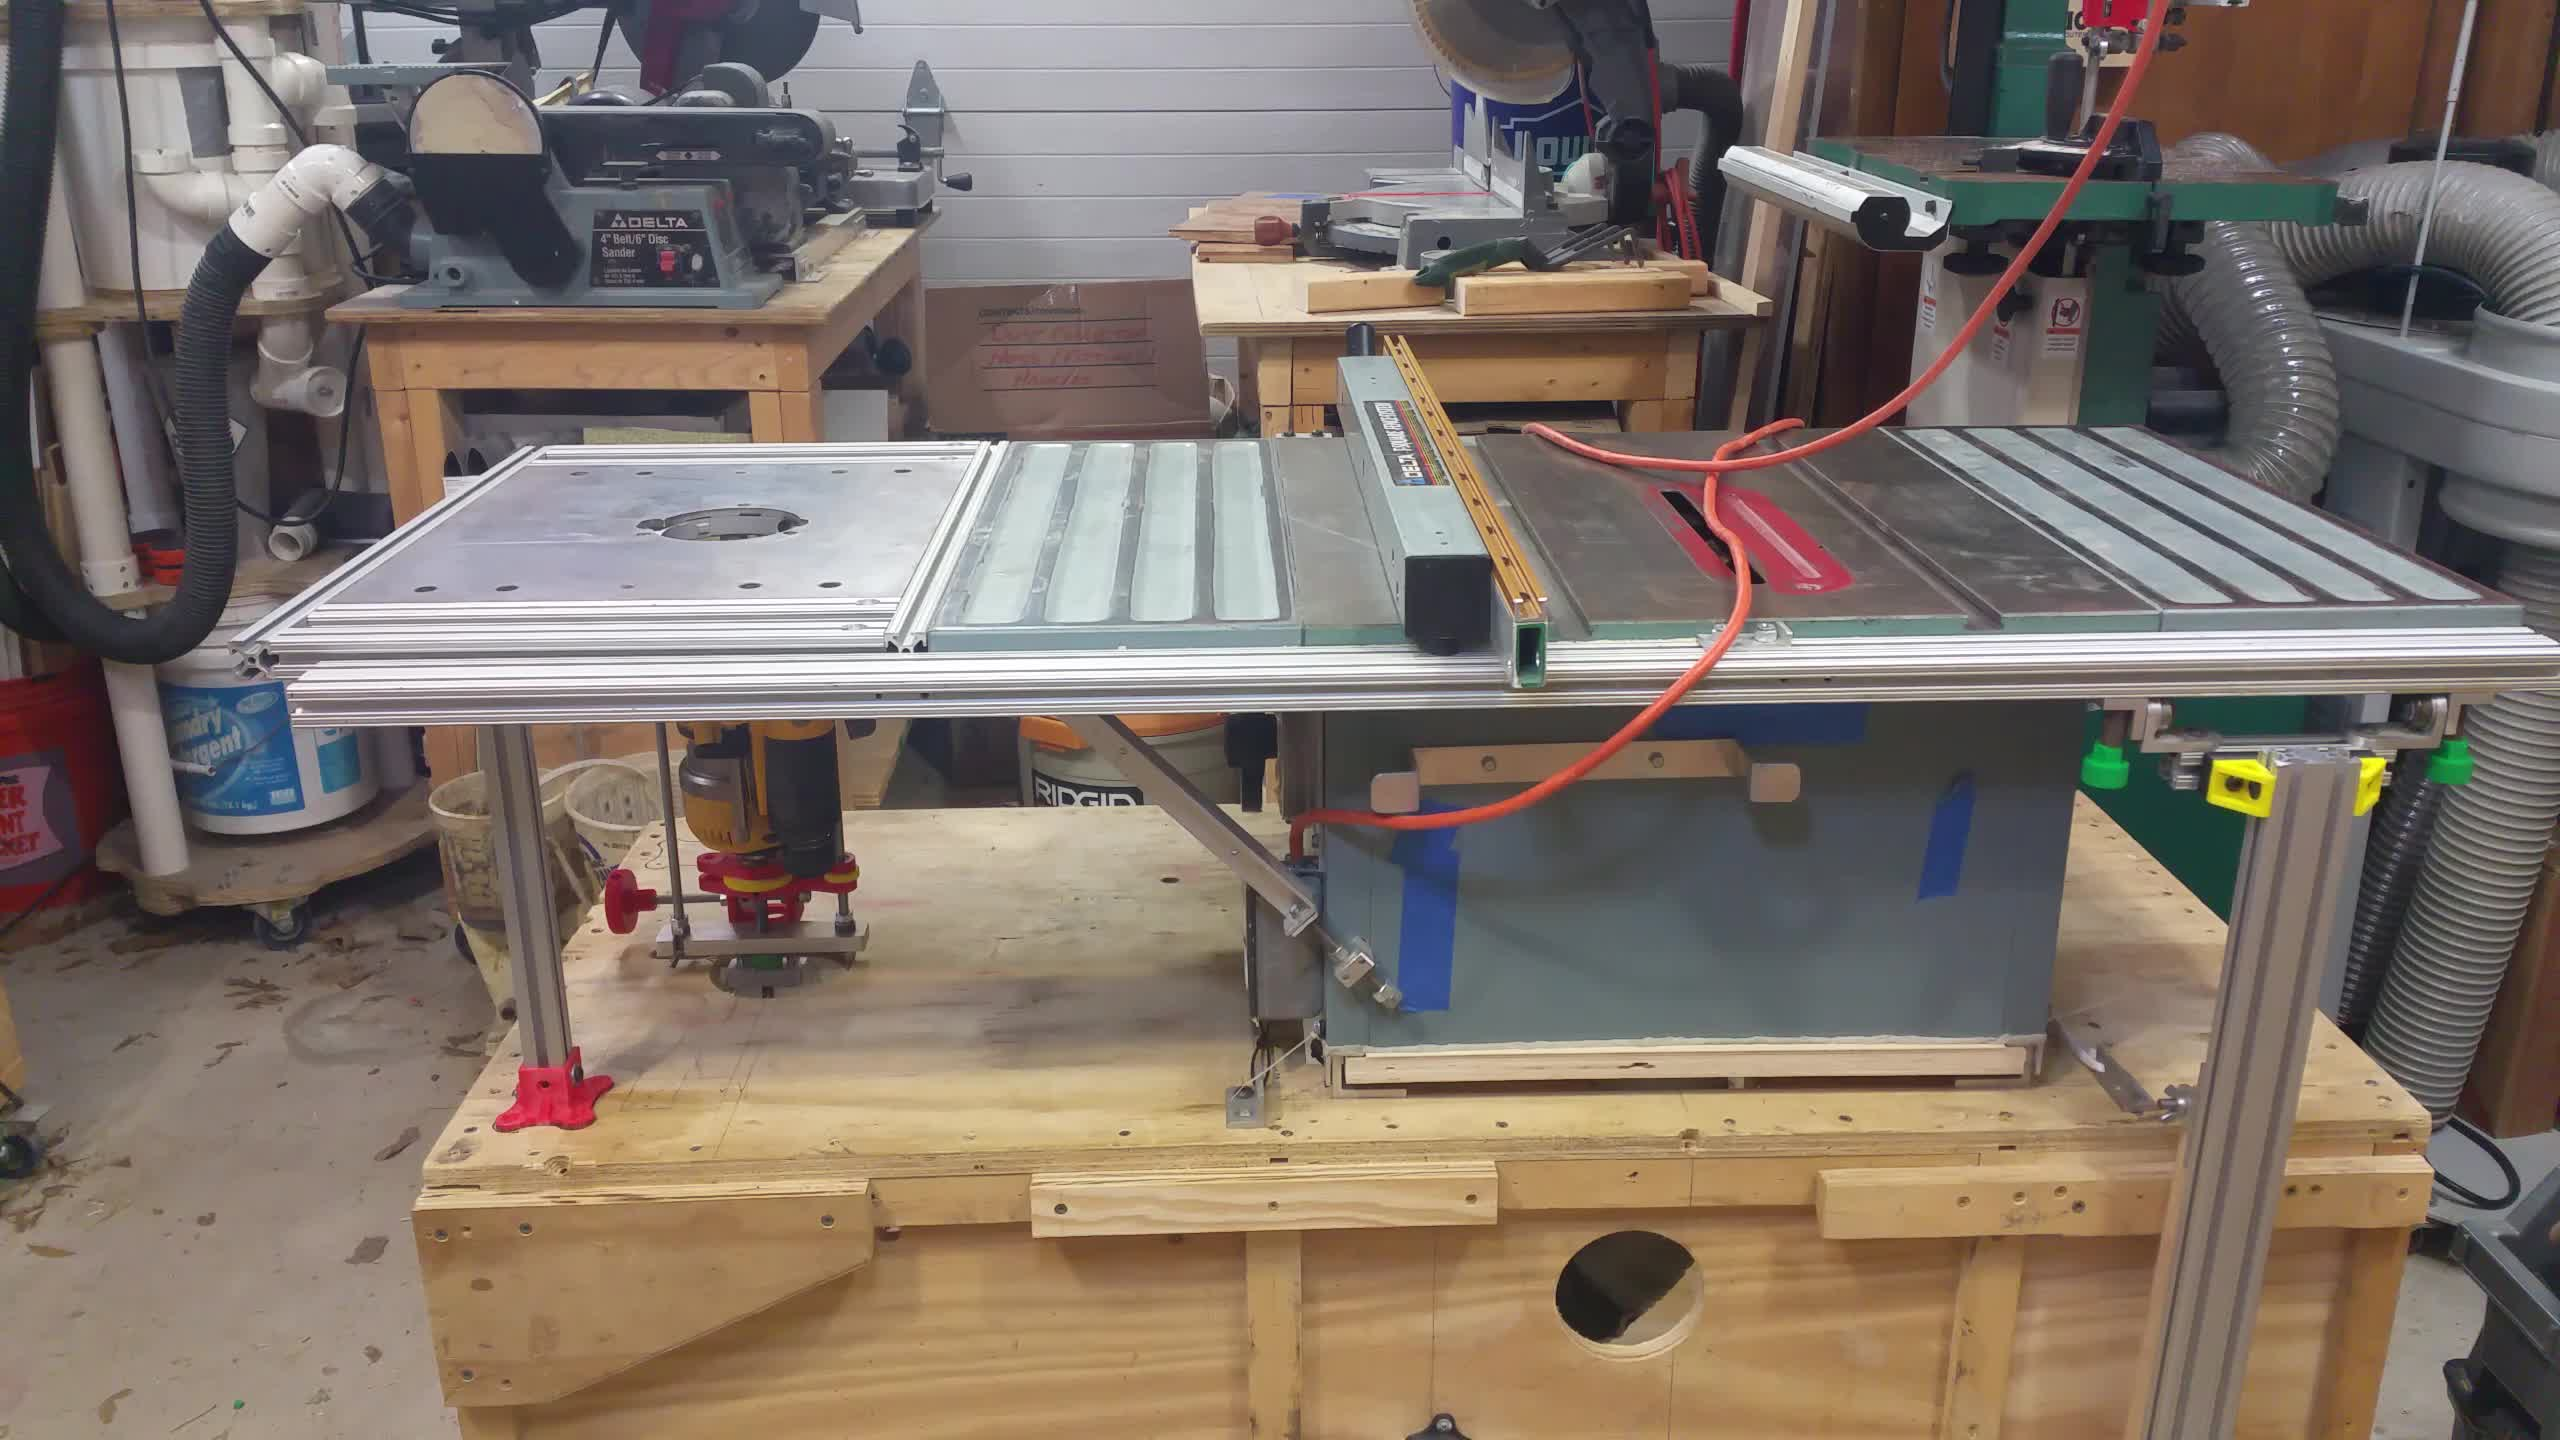 3dprinting, tools, woodworking, Router Table / Table Saw Setup GIFs